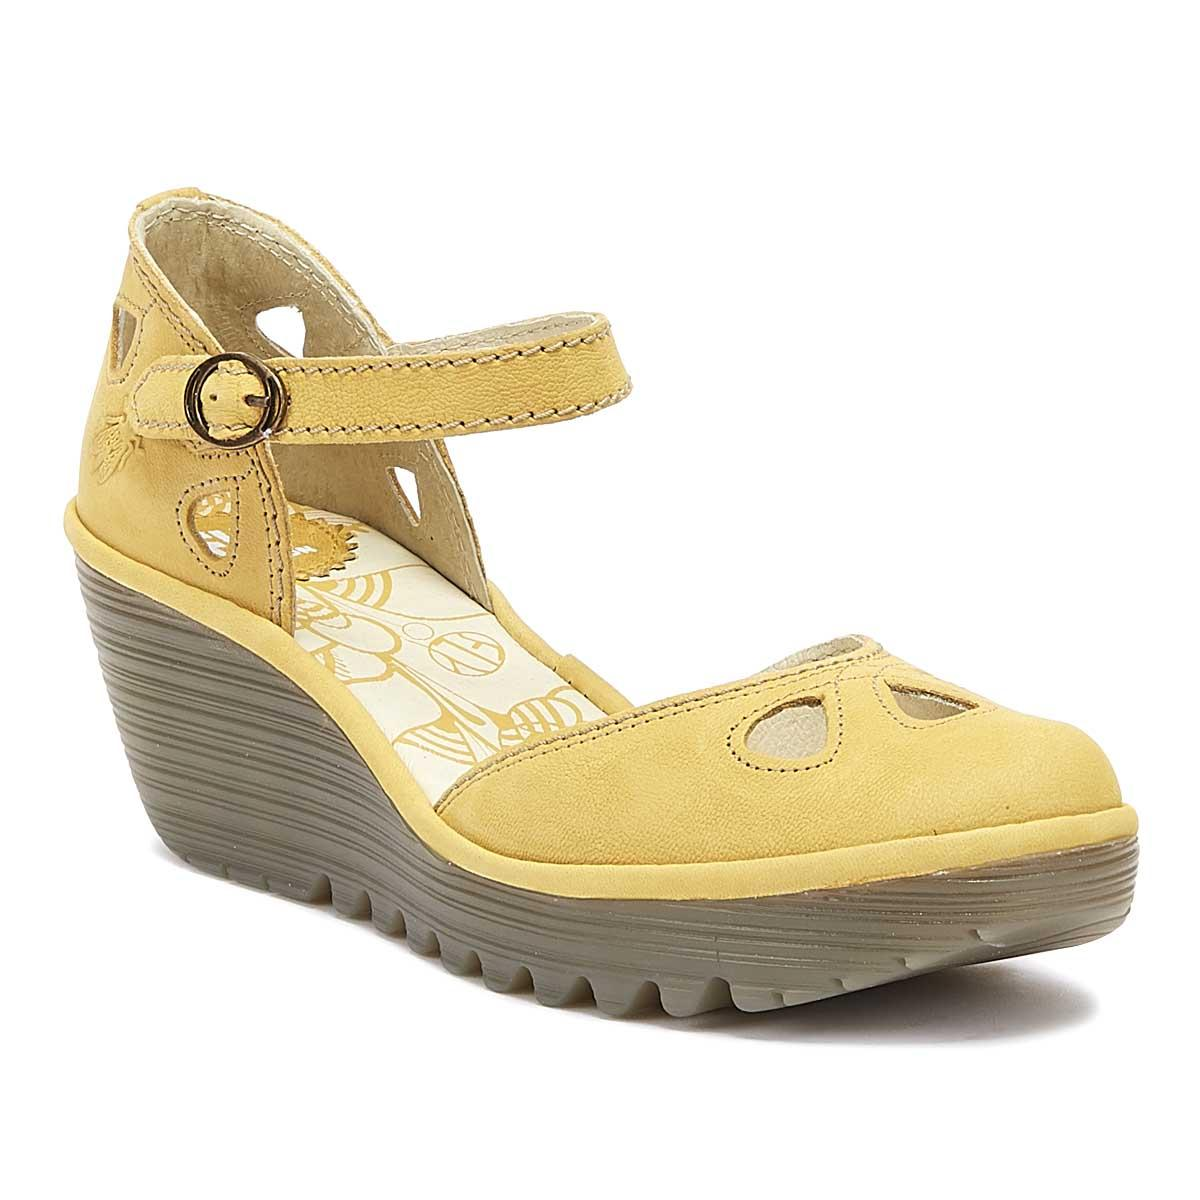 1a759a3a477b1 Fly London Yuna Womens Bumblebee Yellow Leather Wedge Sandals in ...